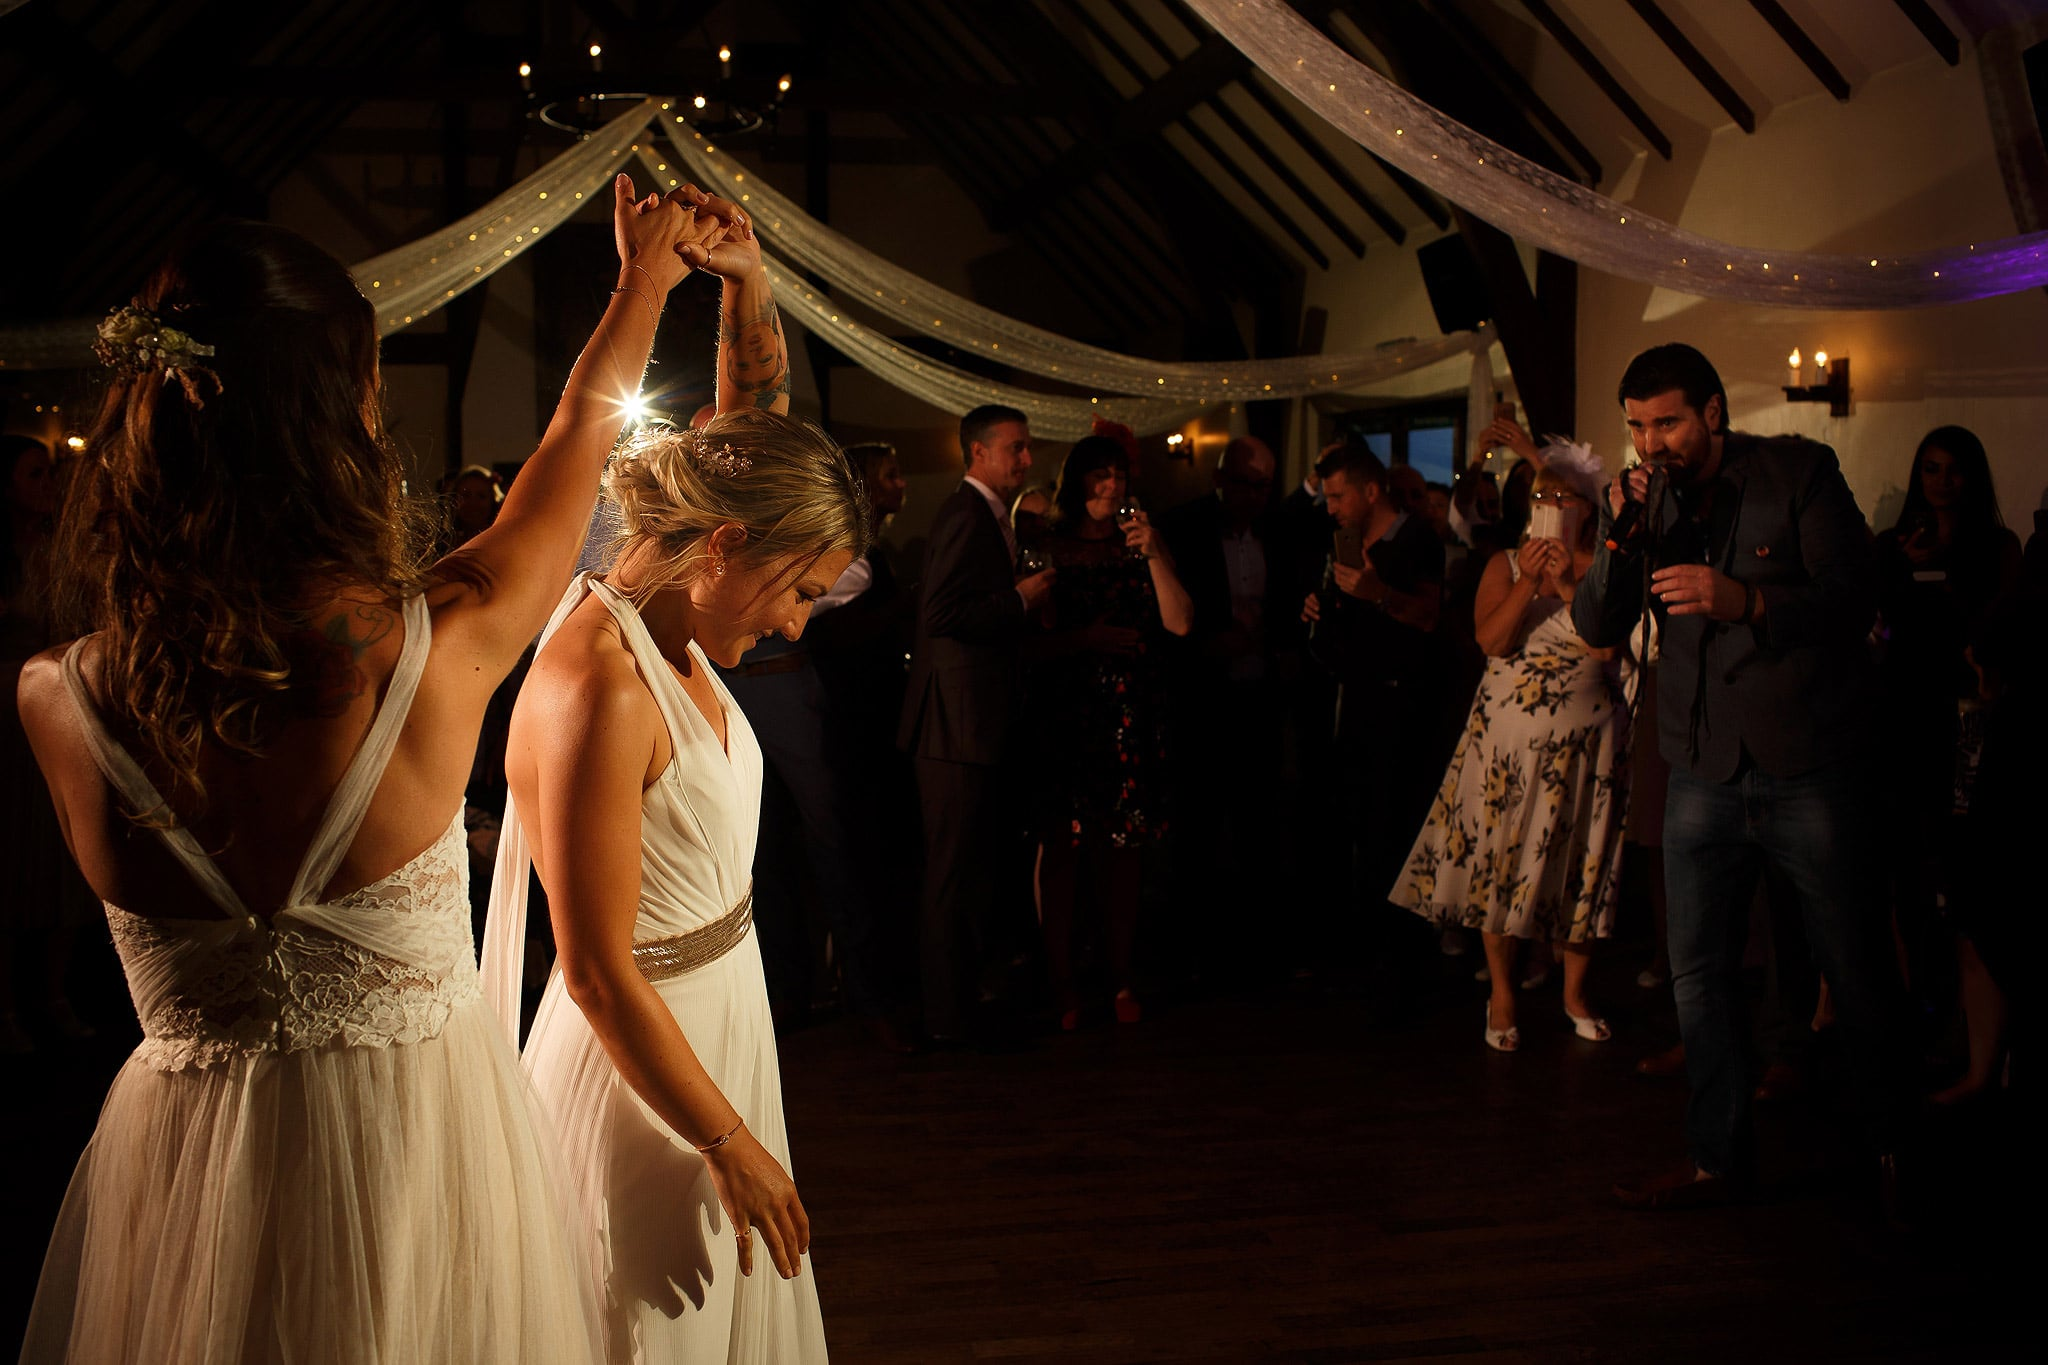 Brides twirling round the dance floor at great hall at mains wedding